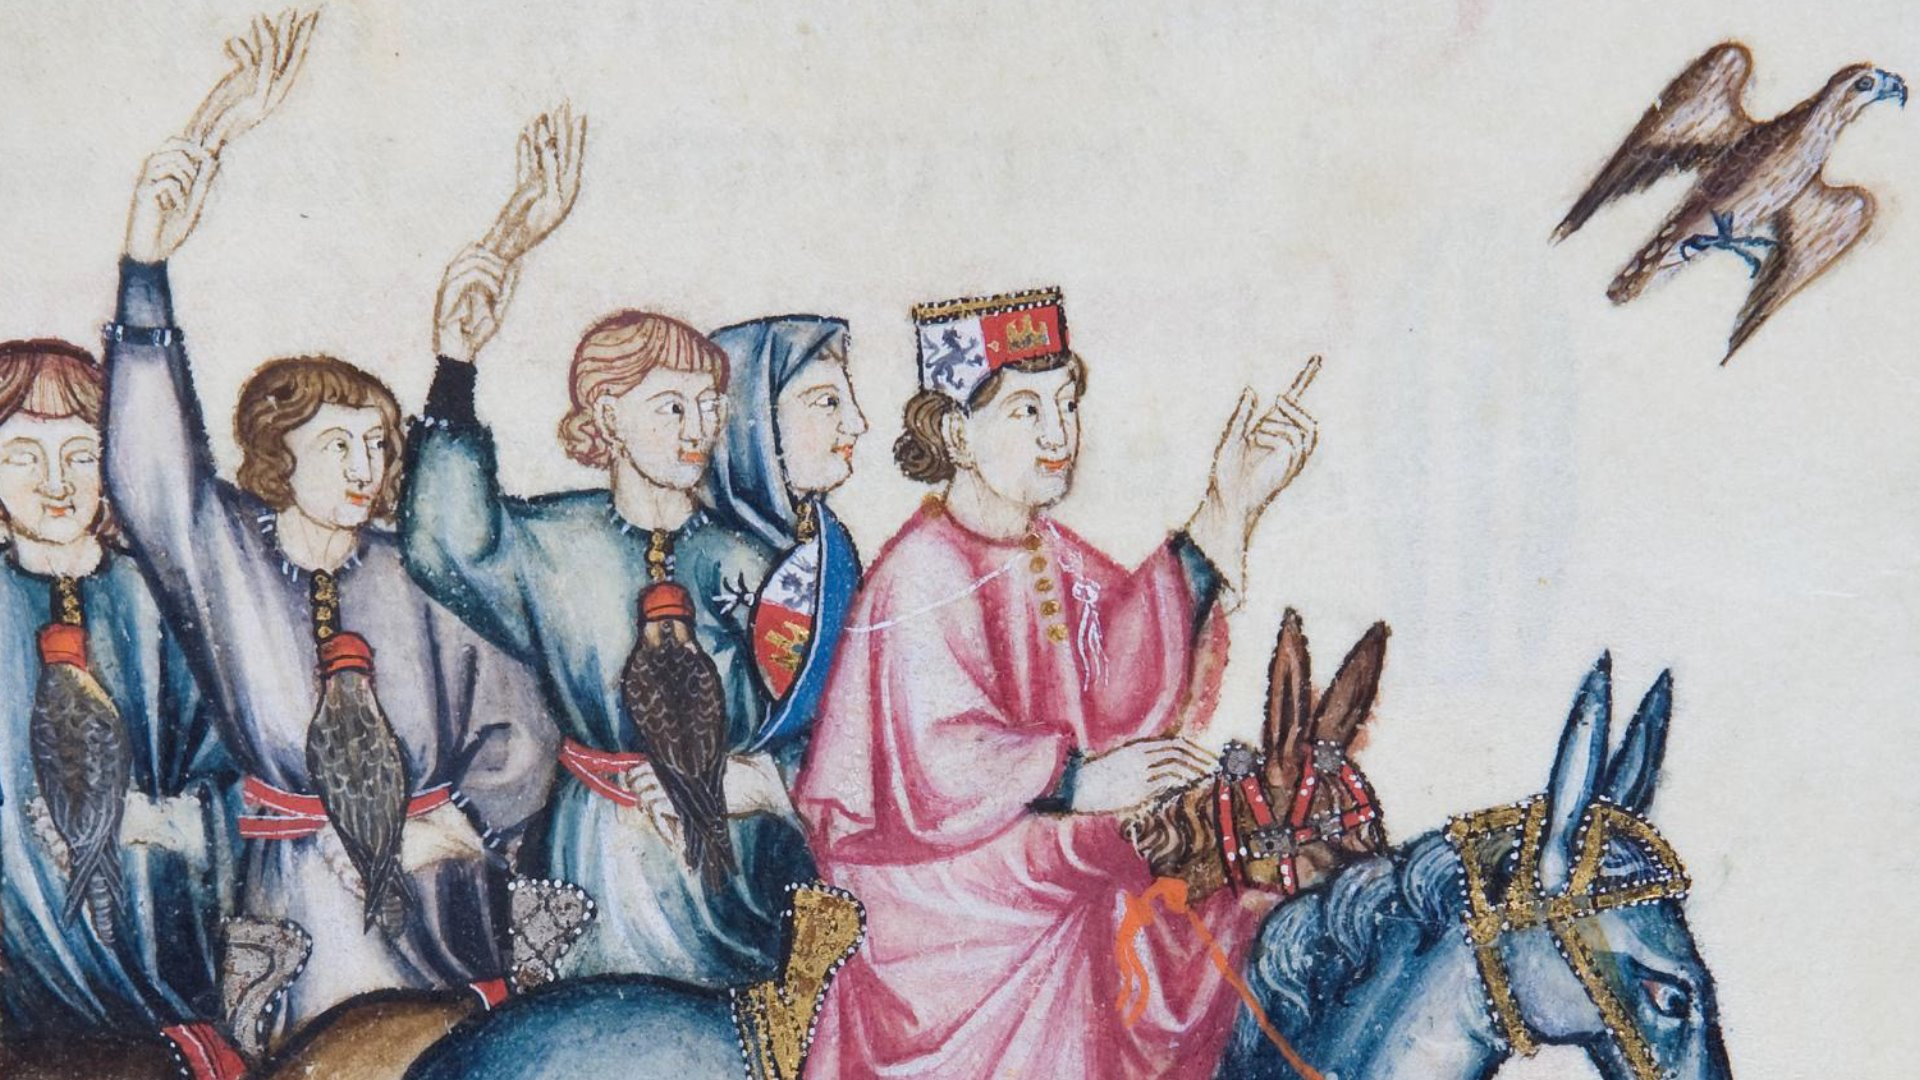 The Amazing Culture of a Kingdom in Eighteenth-Century Europe